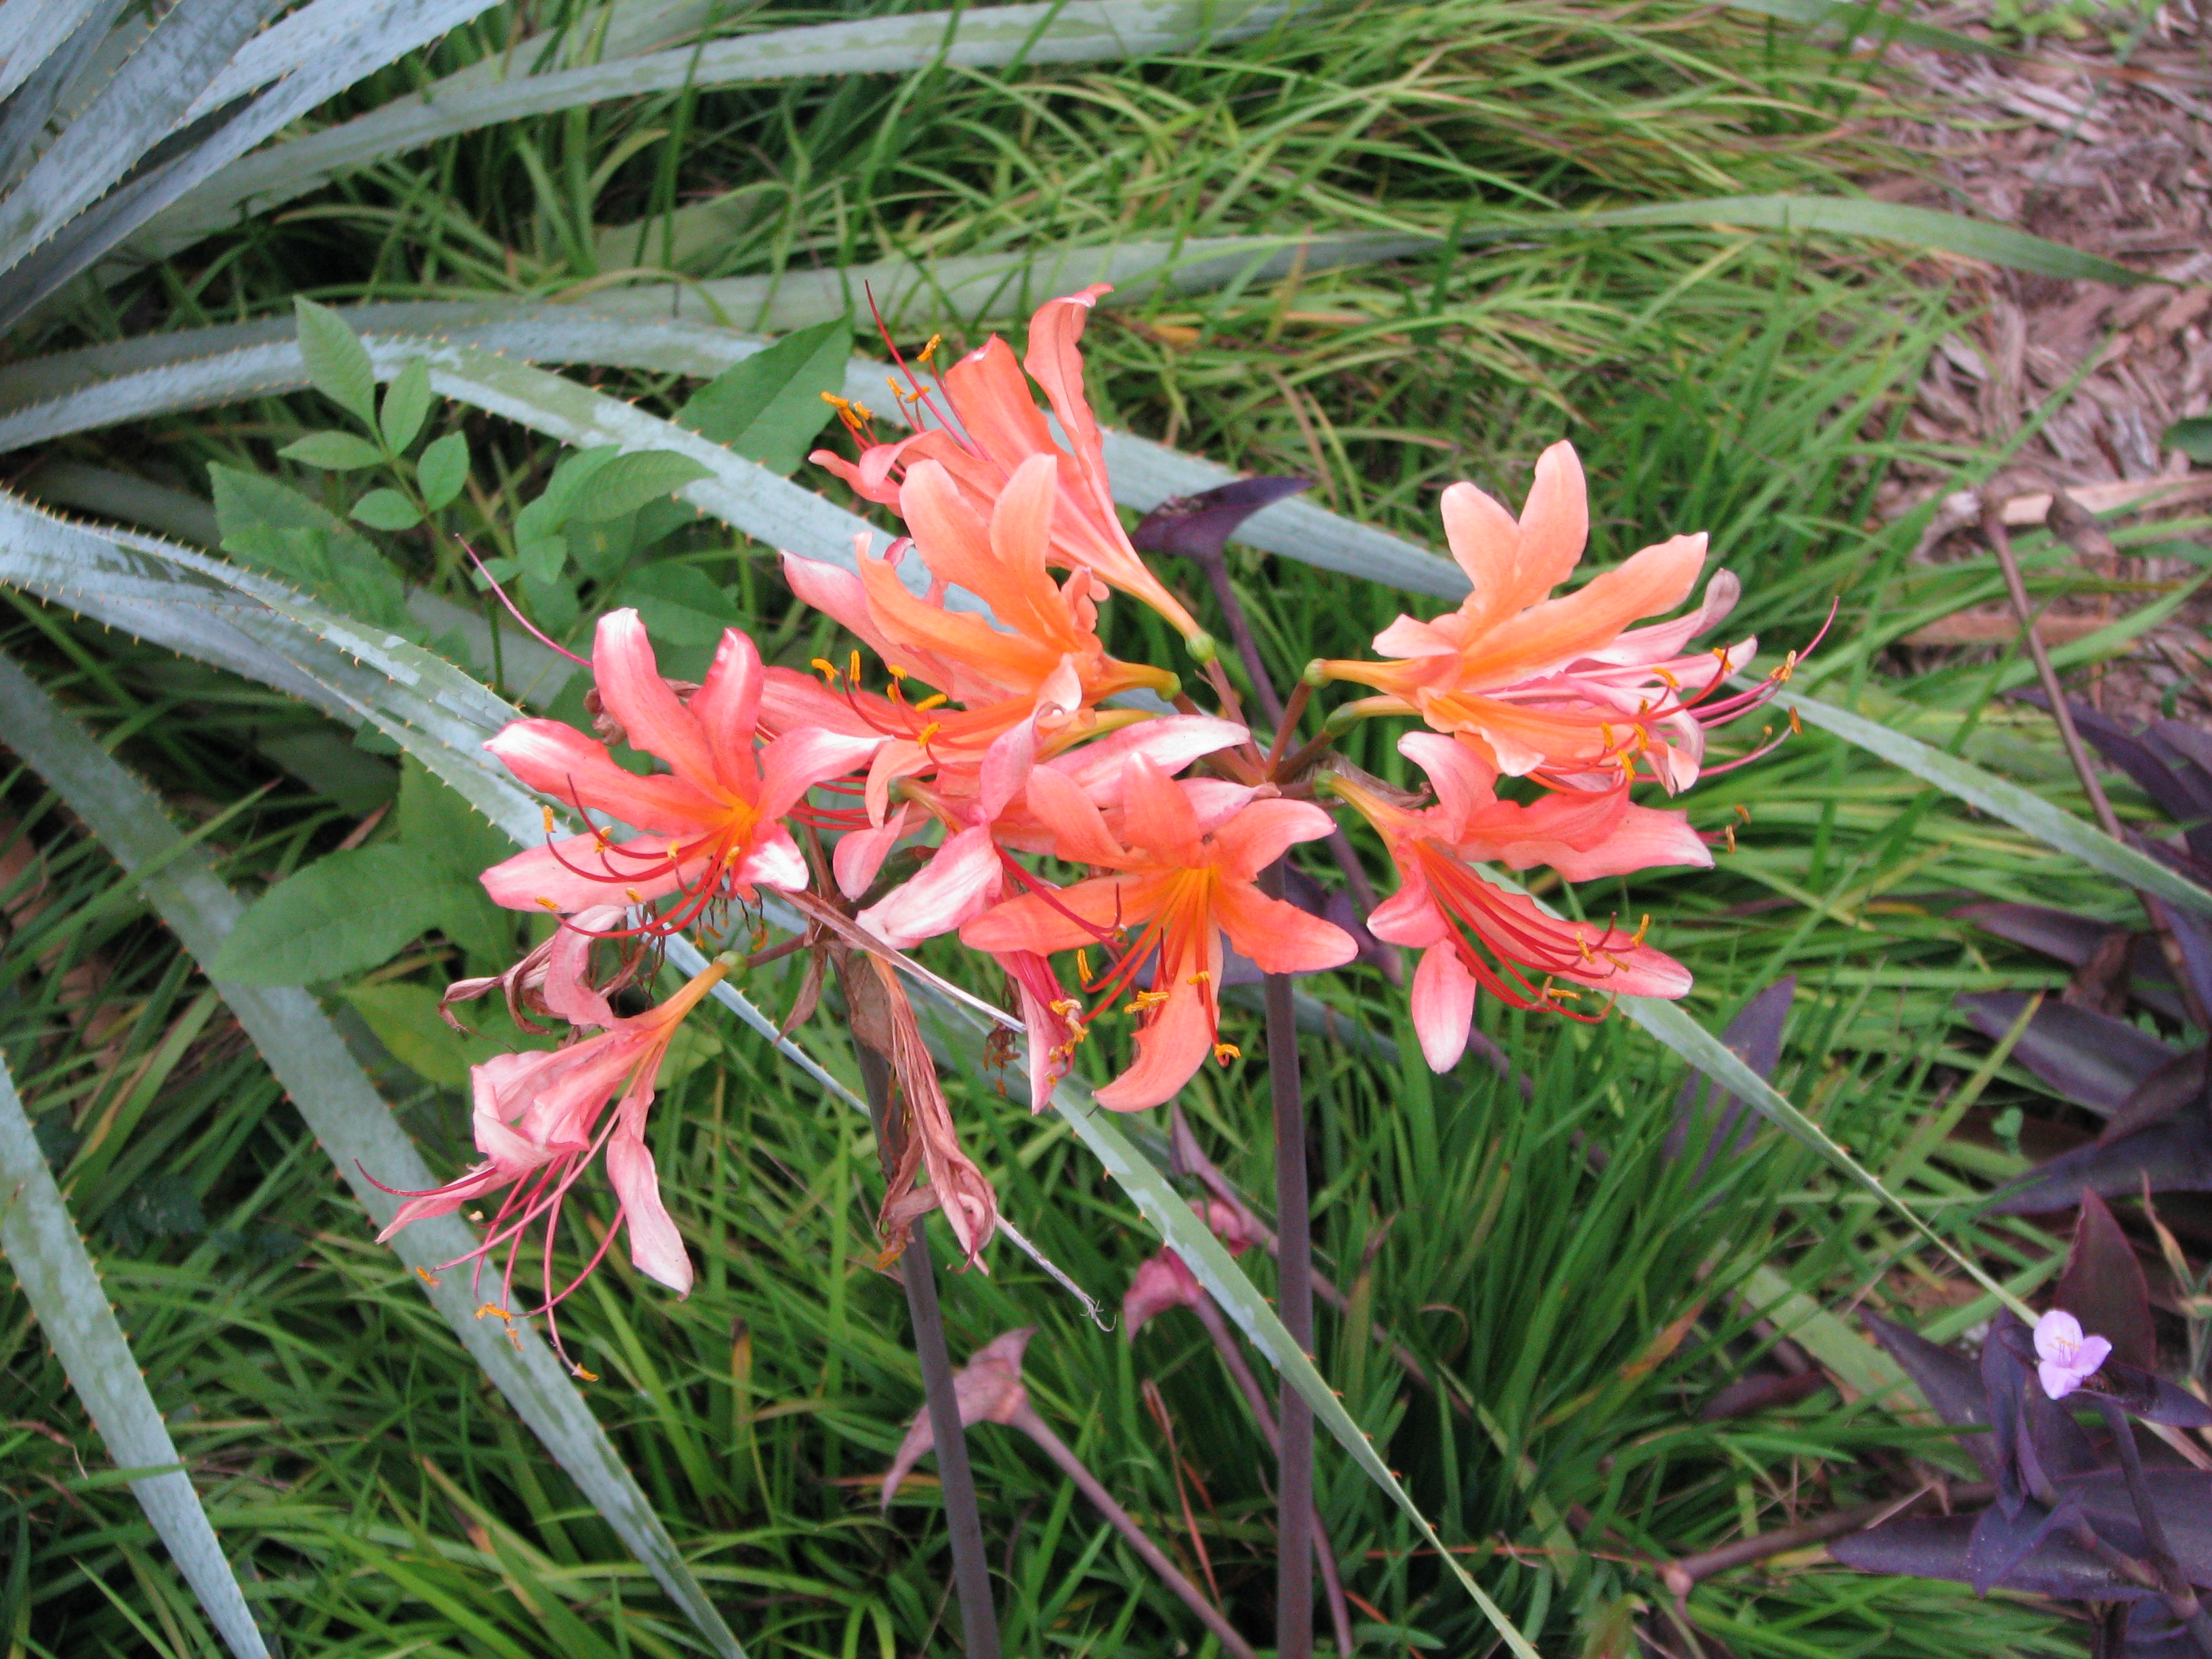 Lycoris x cinnabarina @ Riverbanks Botanic Garden (A. Cabe) - a hybrid of Lycoris aurea x sanguinea